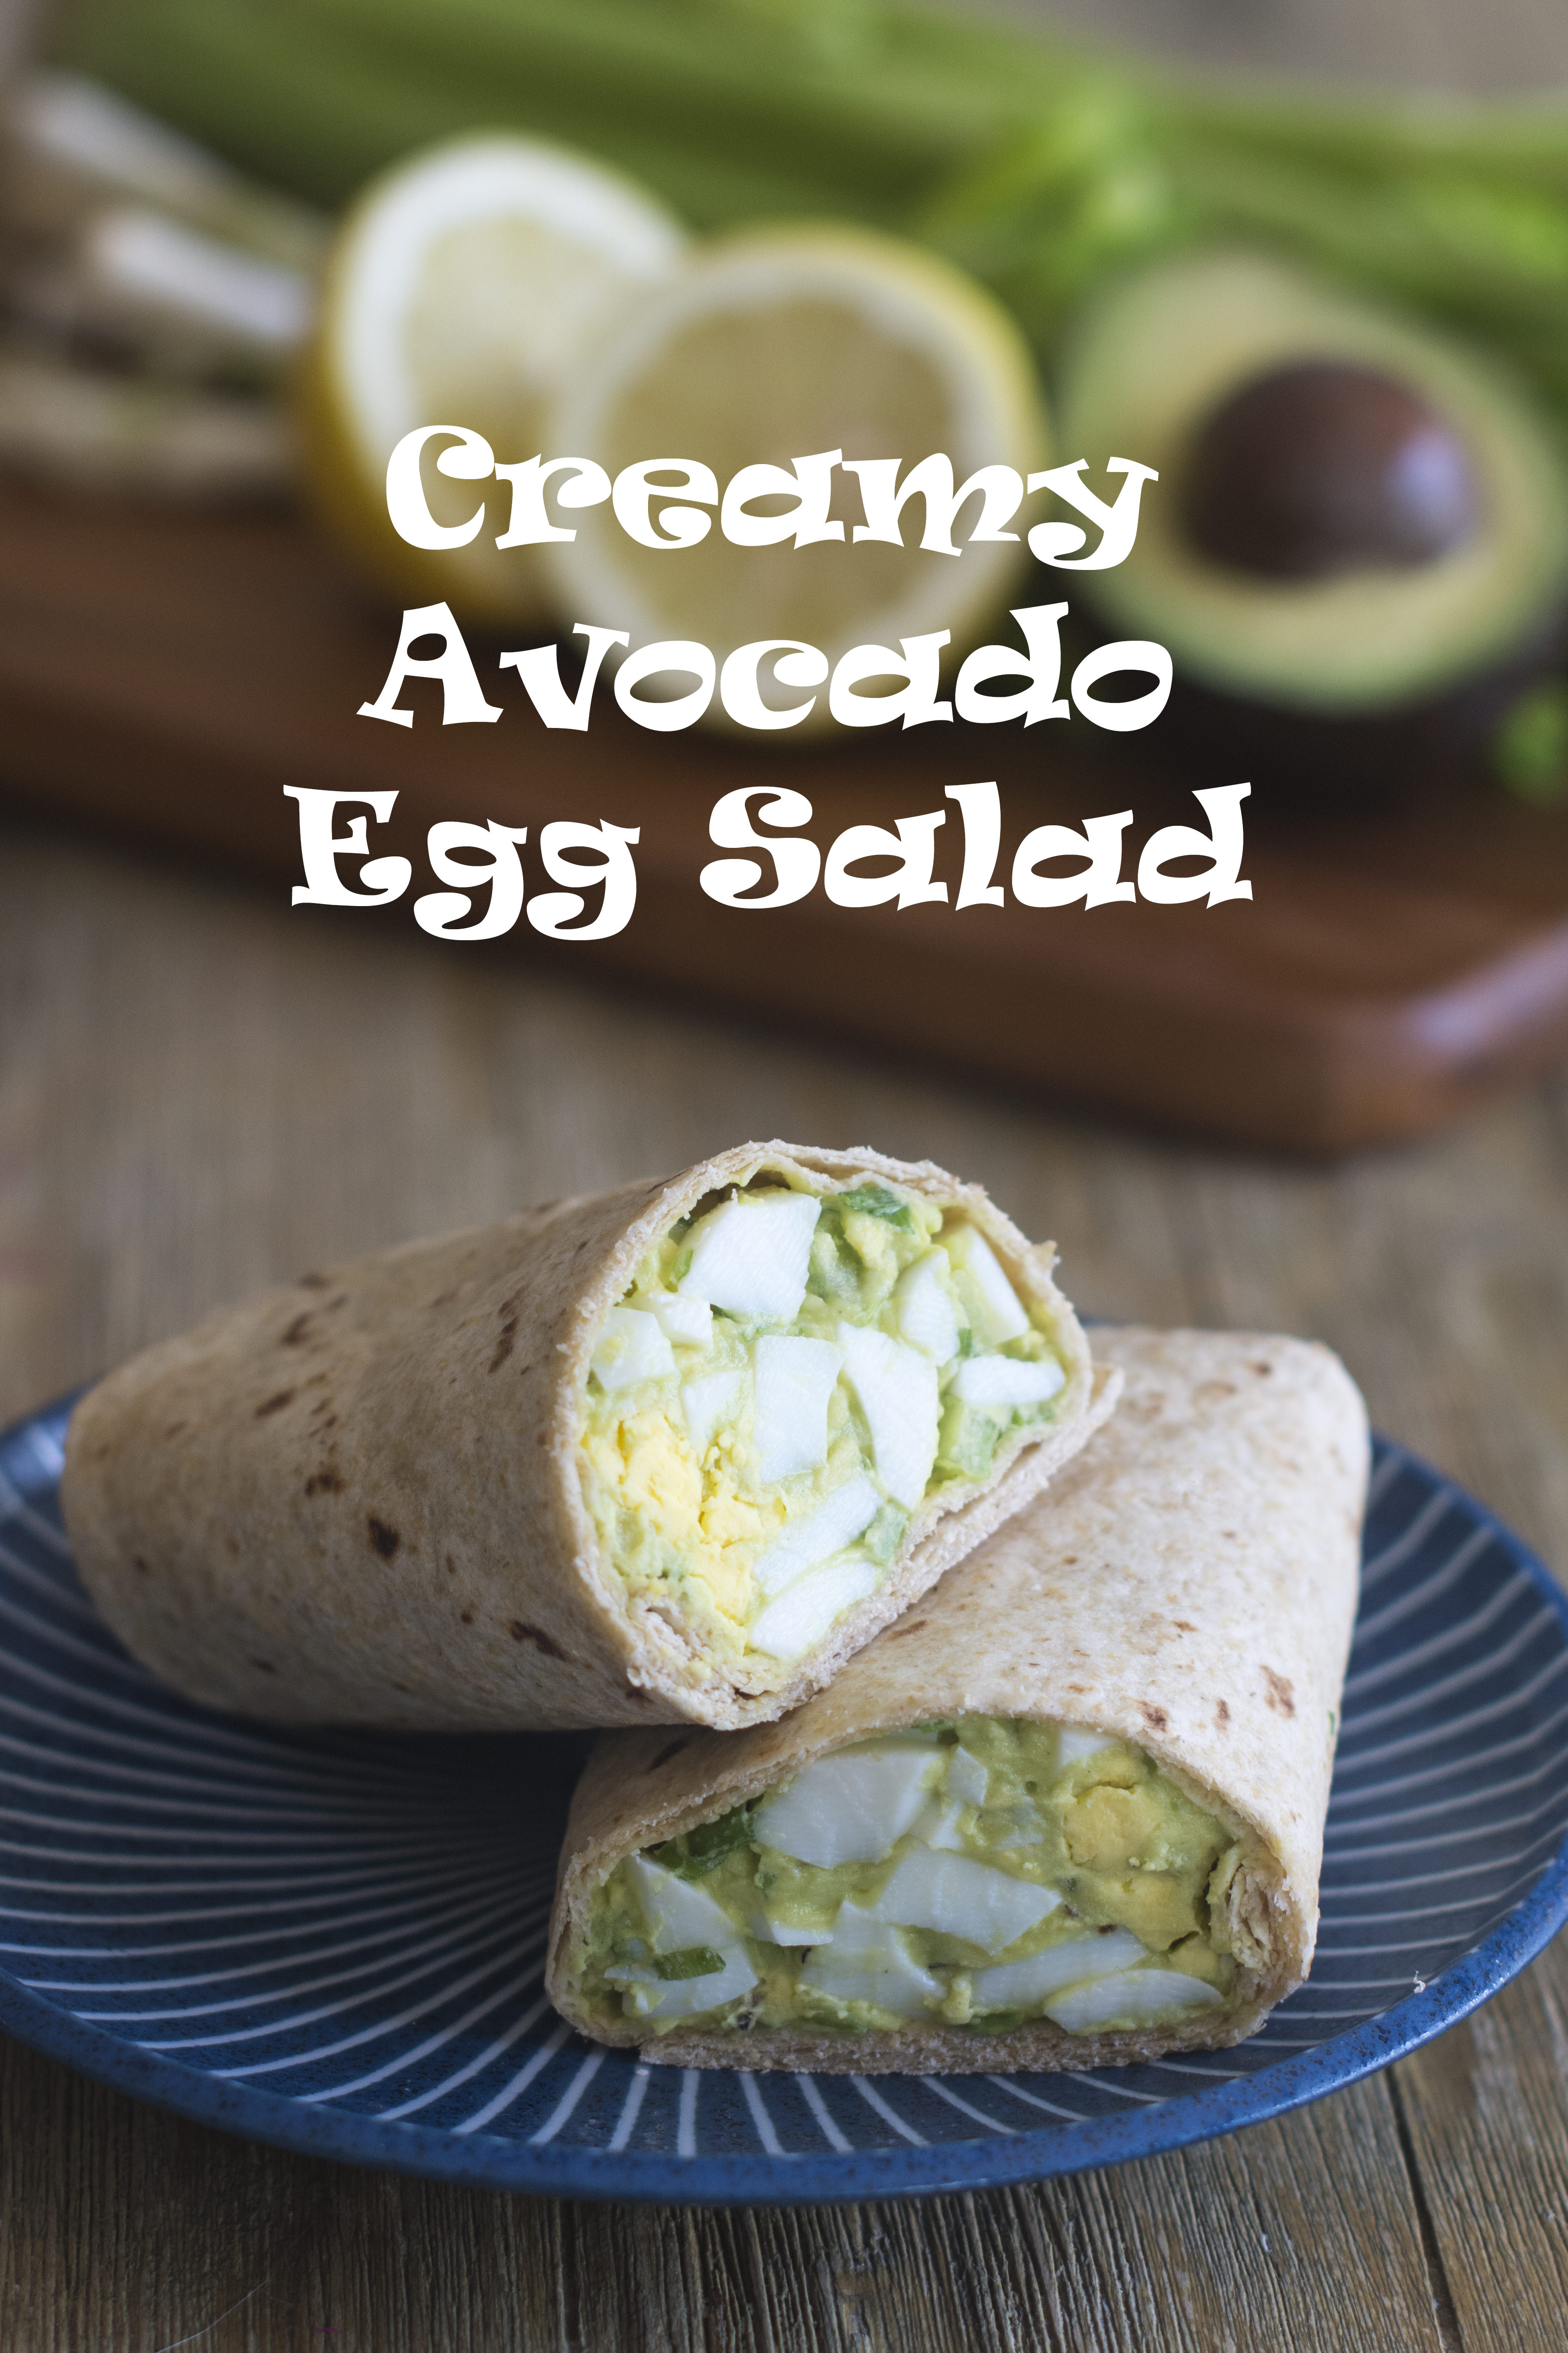 Swap out mayonnaise for avocado when making egg salad and chicken salad.